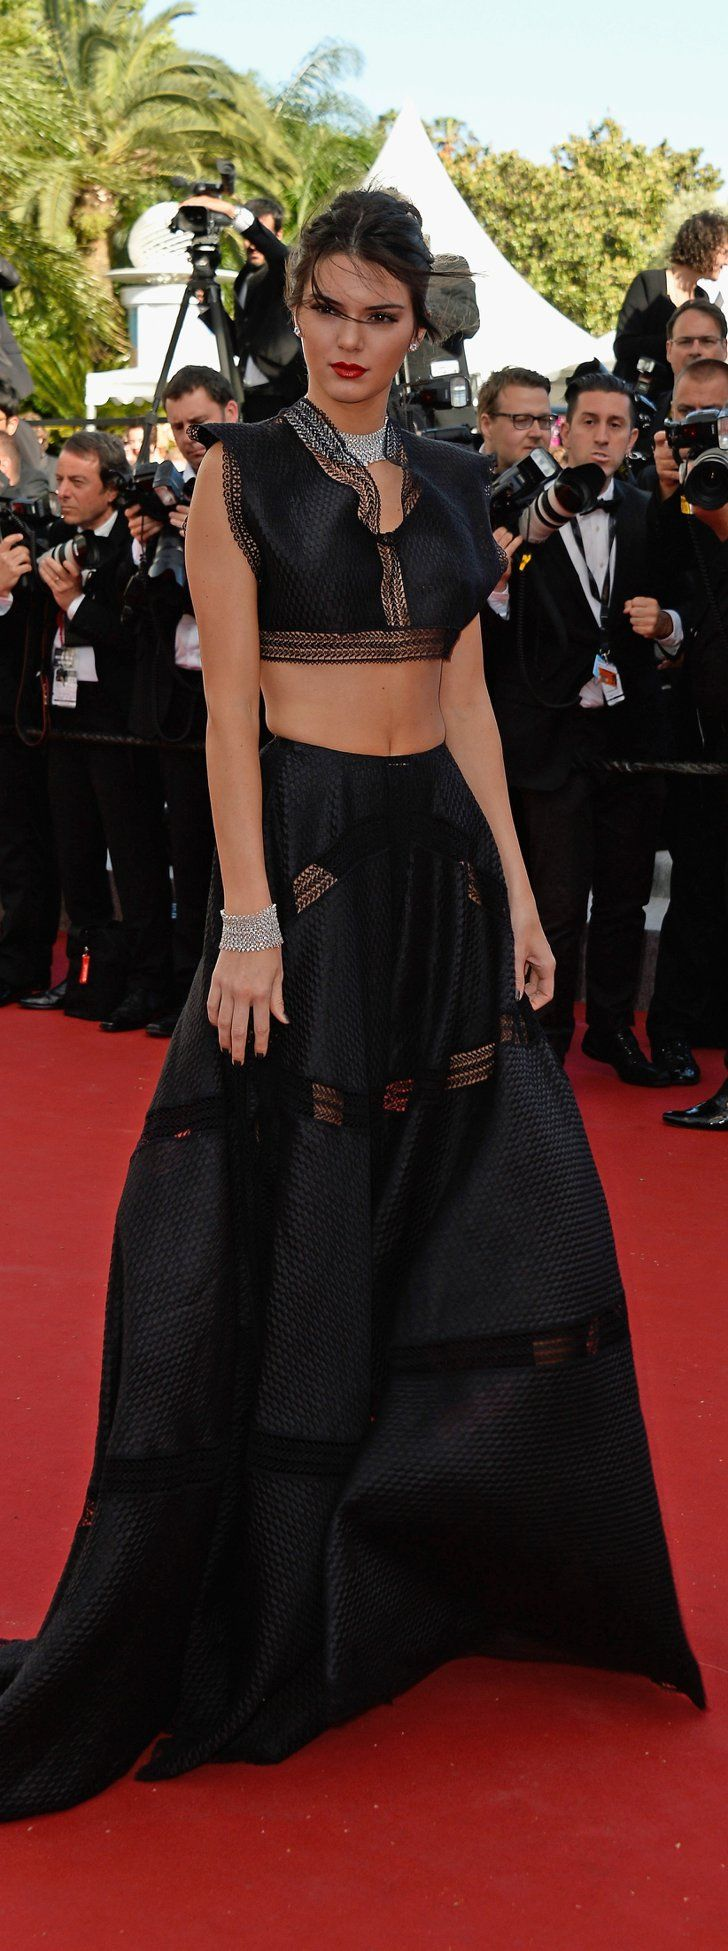 Pin for Later: Kendall Jenner Just Wore a Crop Top on the Cannes Red Carpet